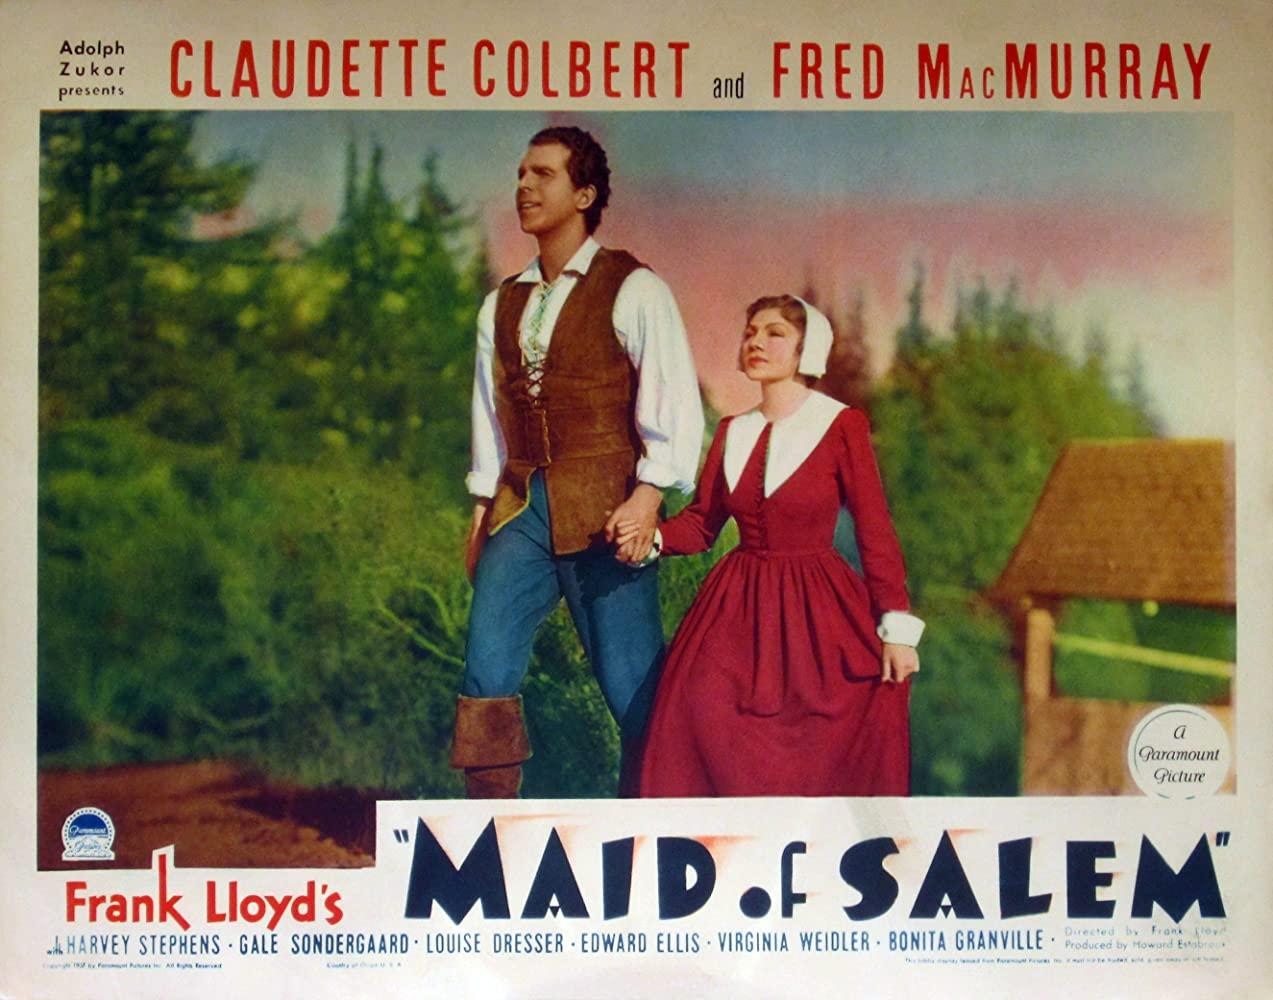 Claudette Colbert and Fred MacMurray in Maid of Salem (1937)